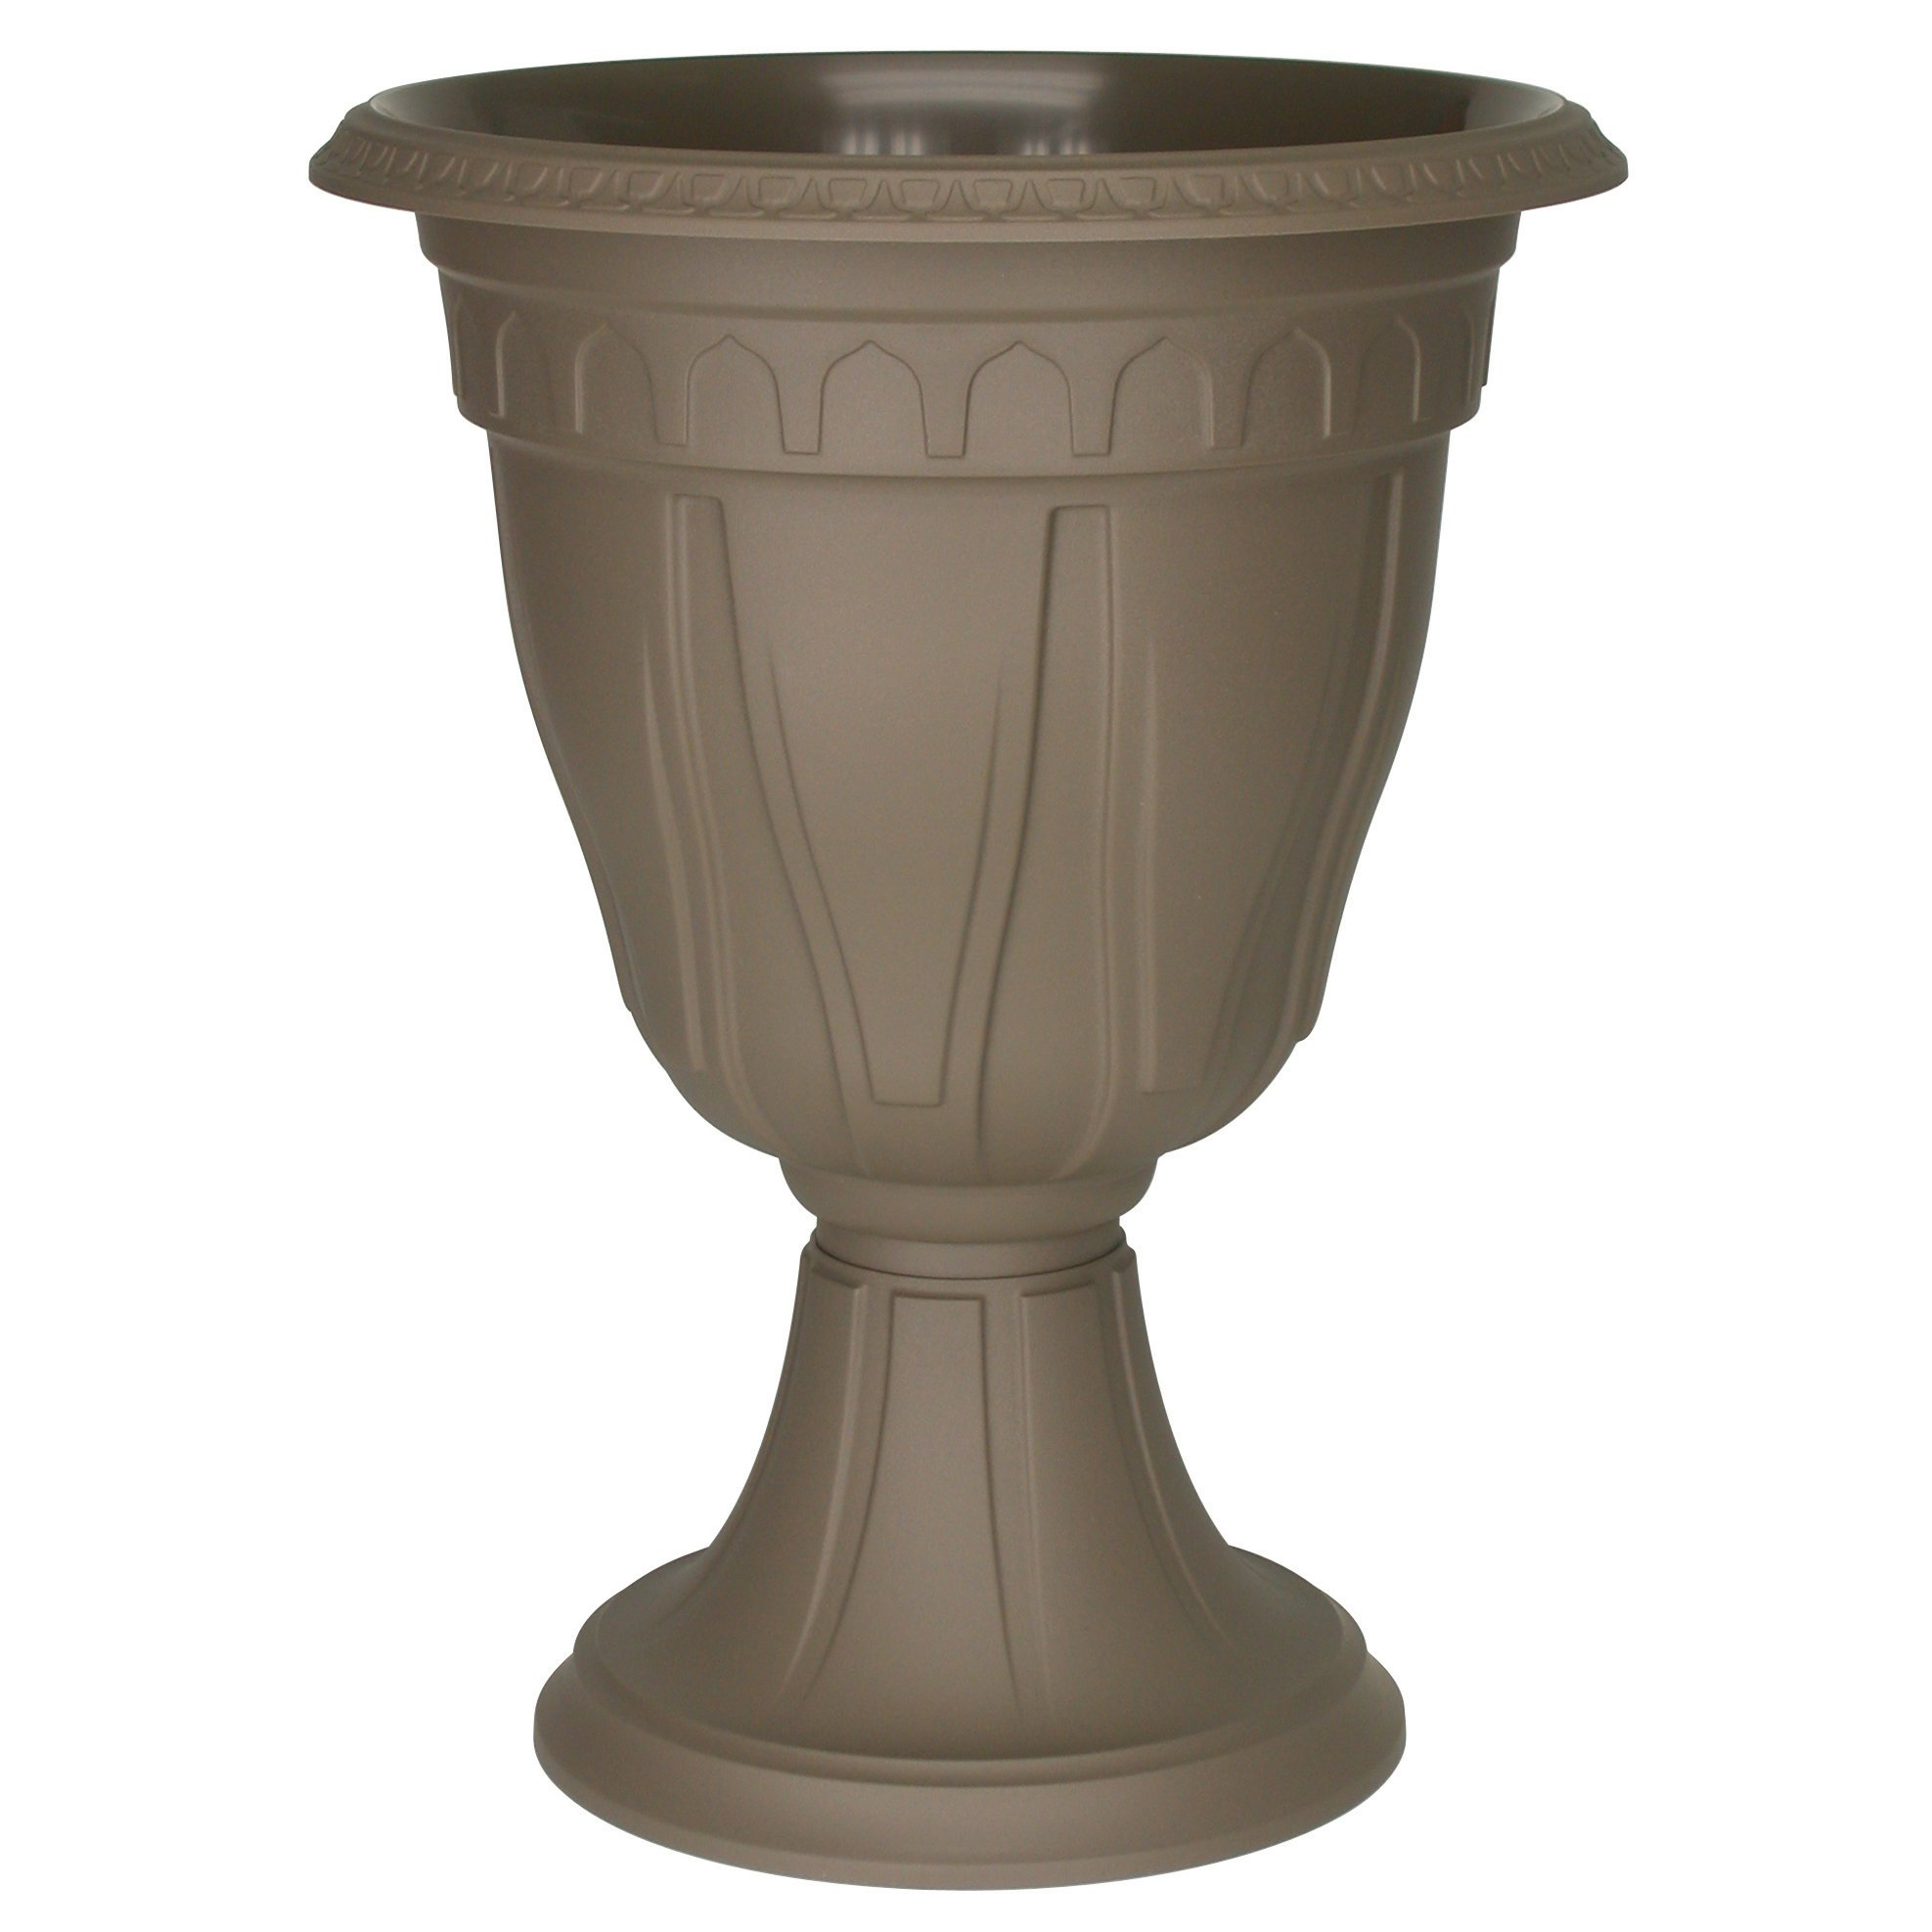 DCN Plastic 1420CA Tall Azura Urn Planter, Cappuccino by DCN Plastic